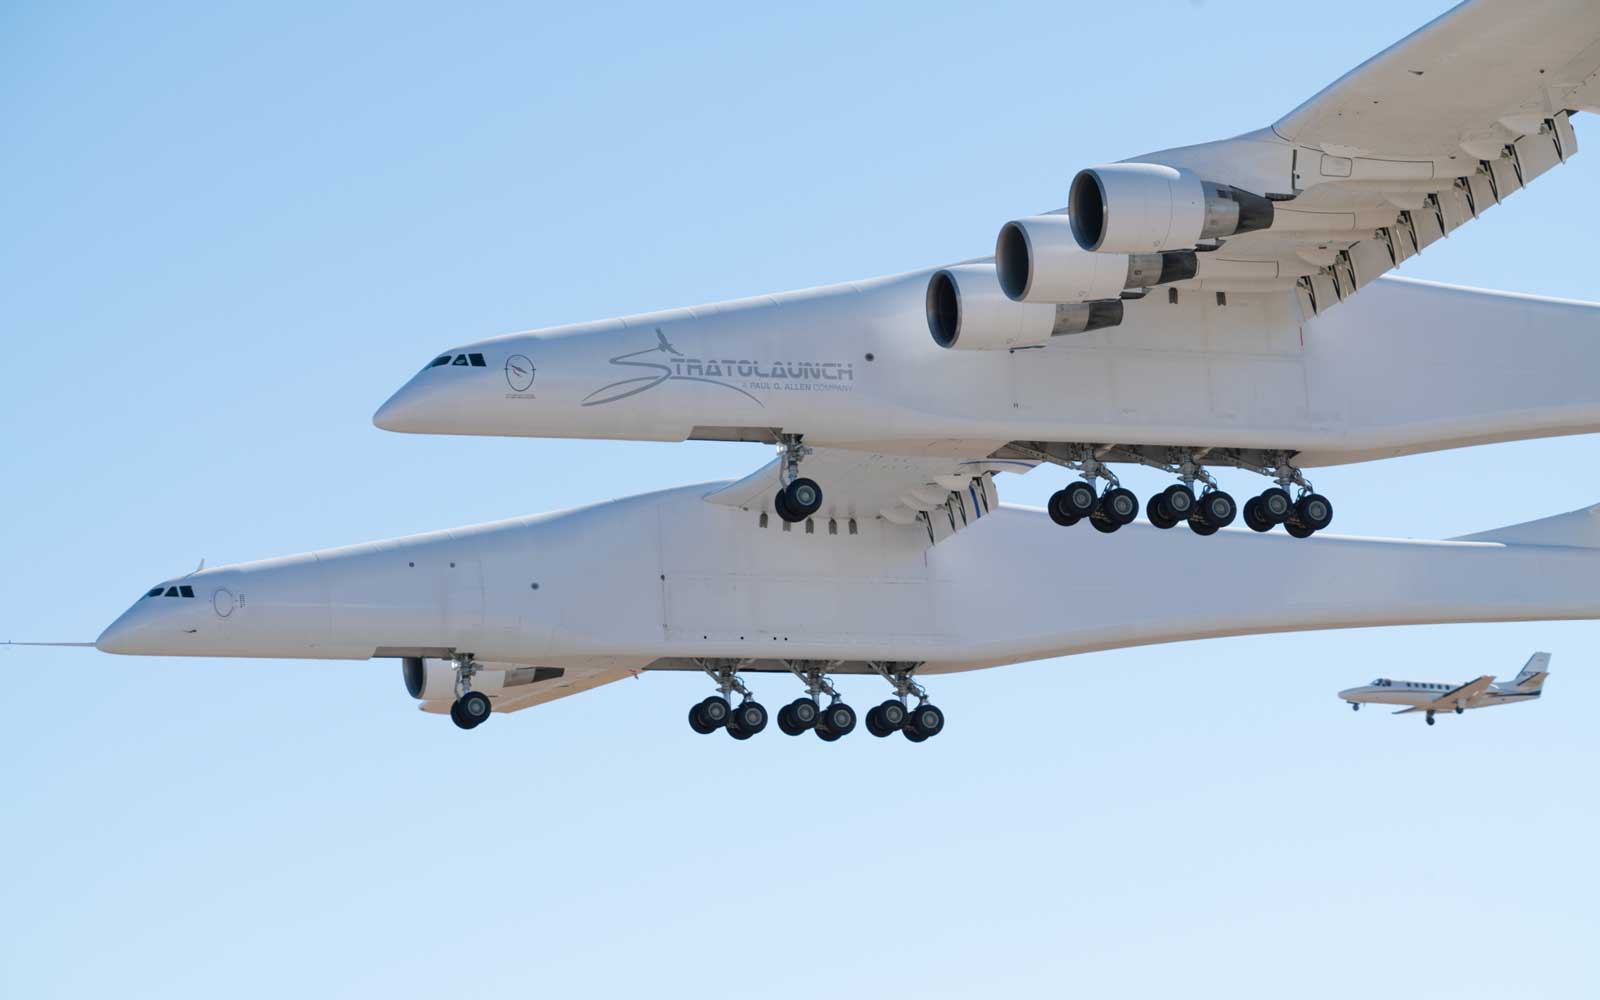 World's Largest Aircraft, Stratolaunch's first flight